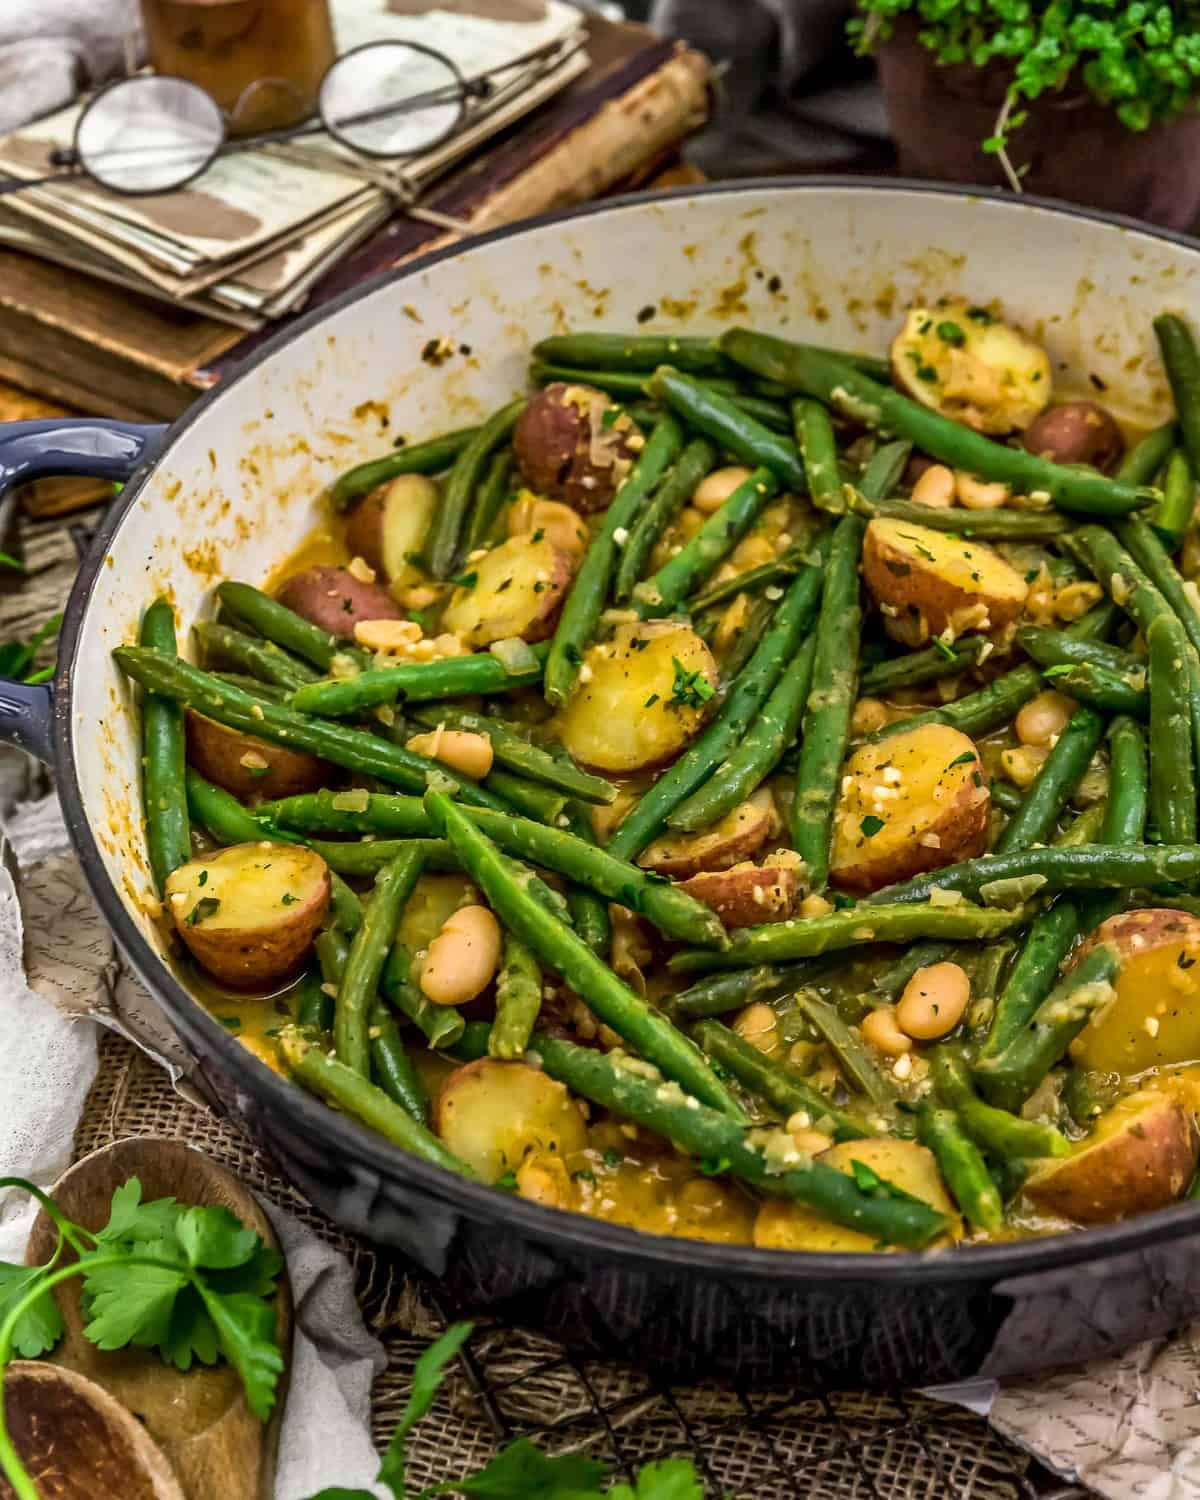 Country Ranch Green Beans and Potato in a skillet